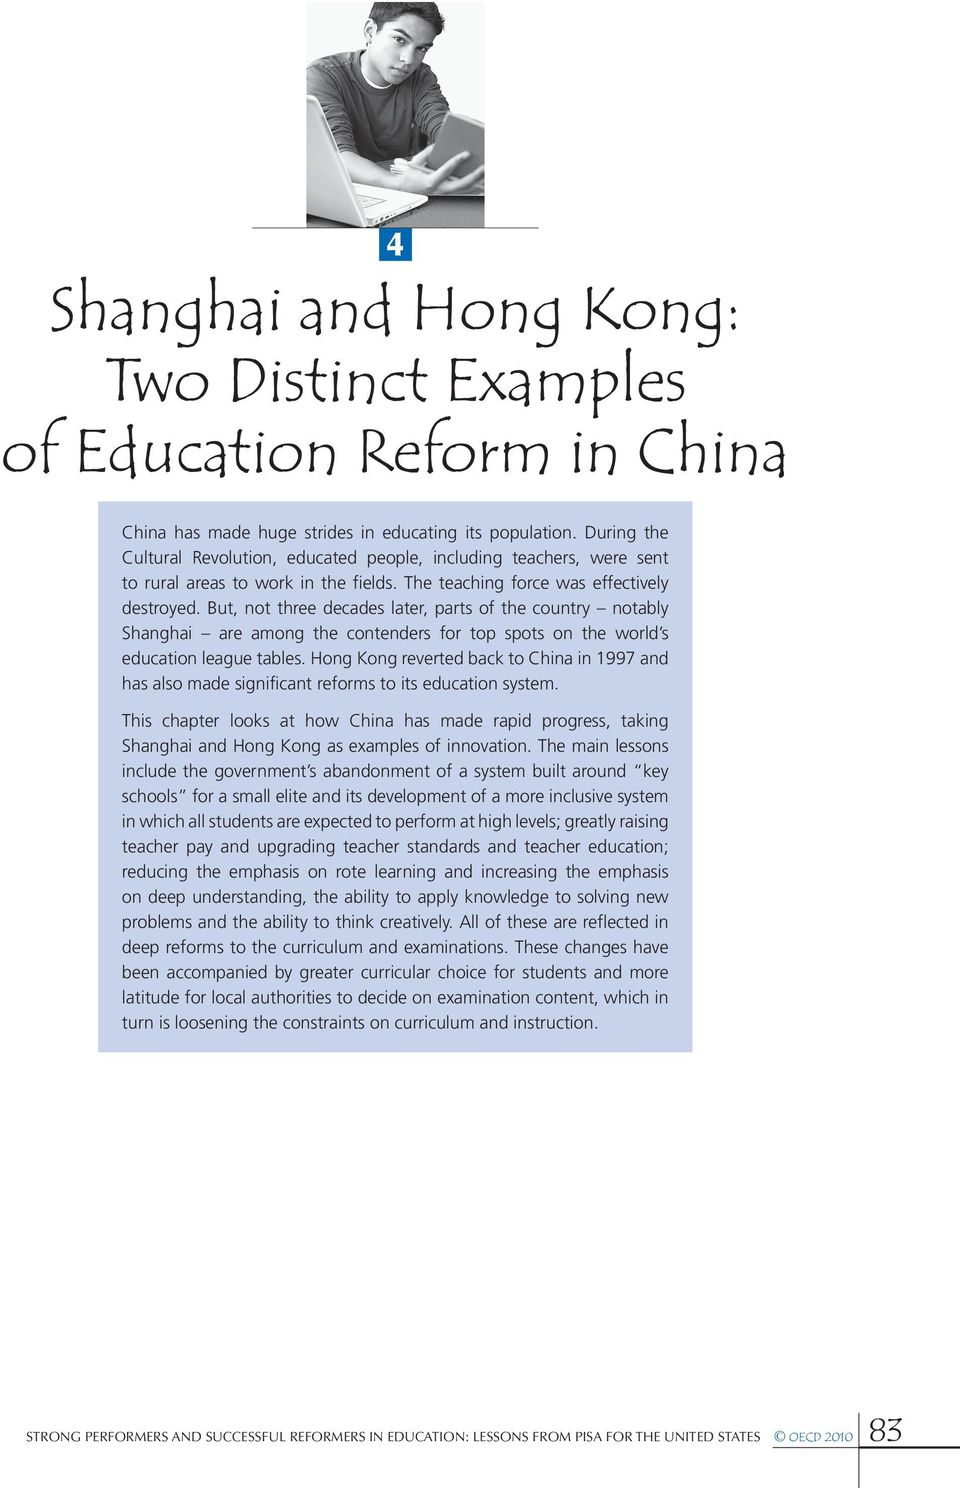 But, not three decades later, parts of the country notably Shanghai are among the contenders for top spots on the world s education league tables.